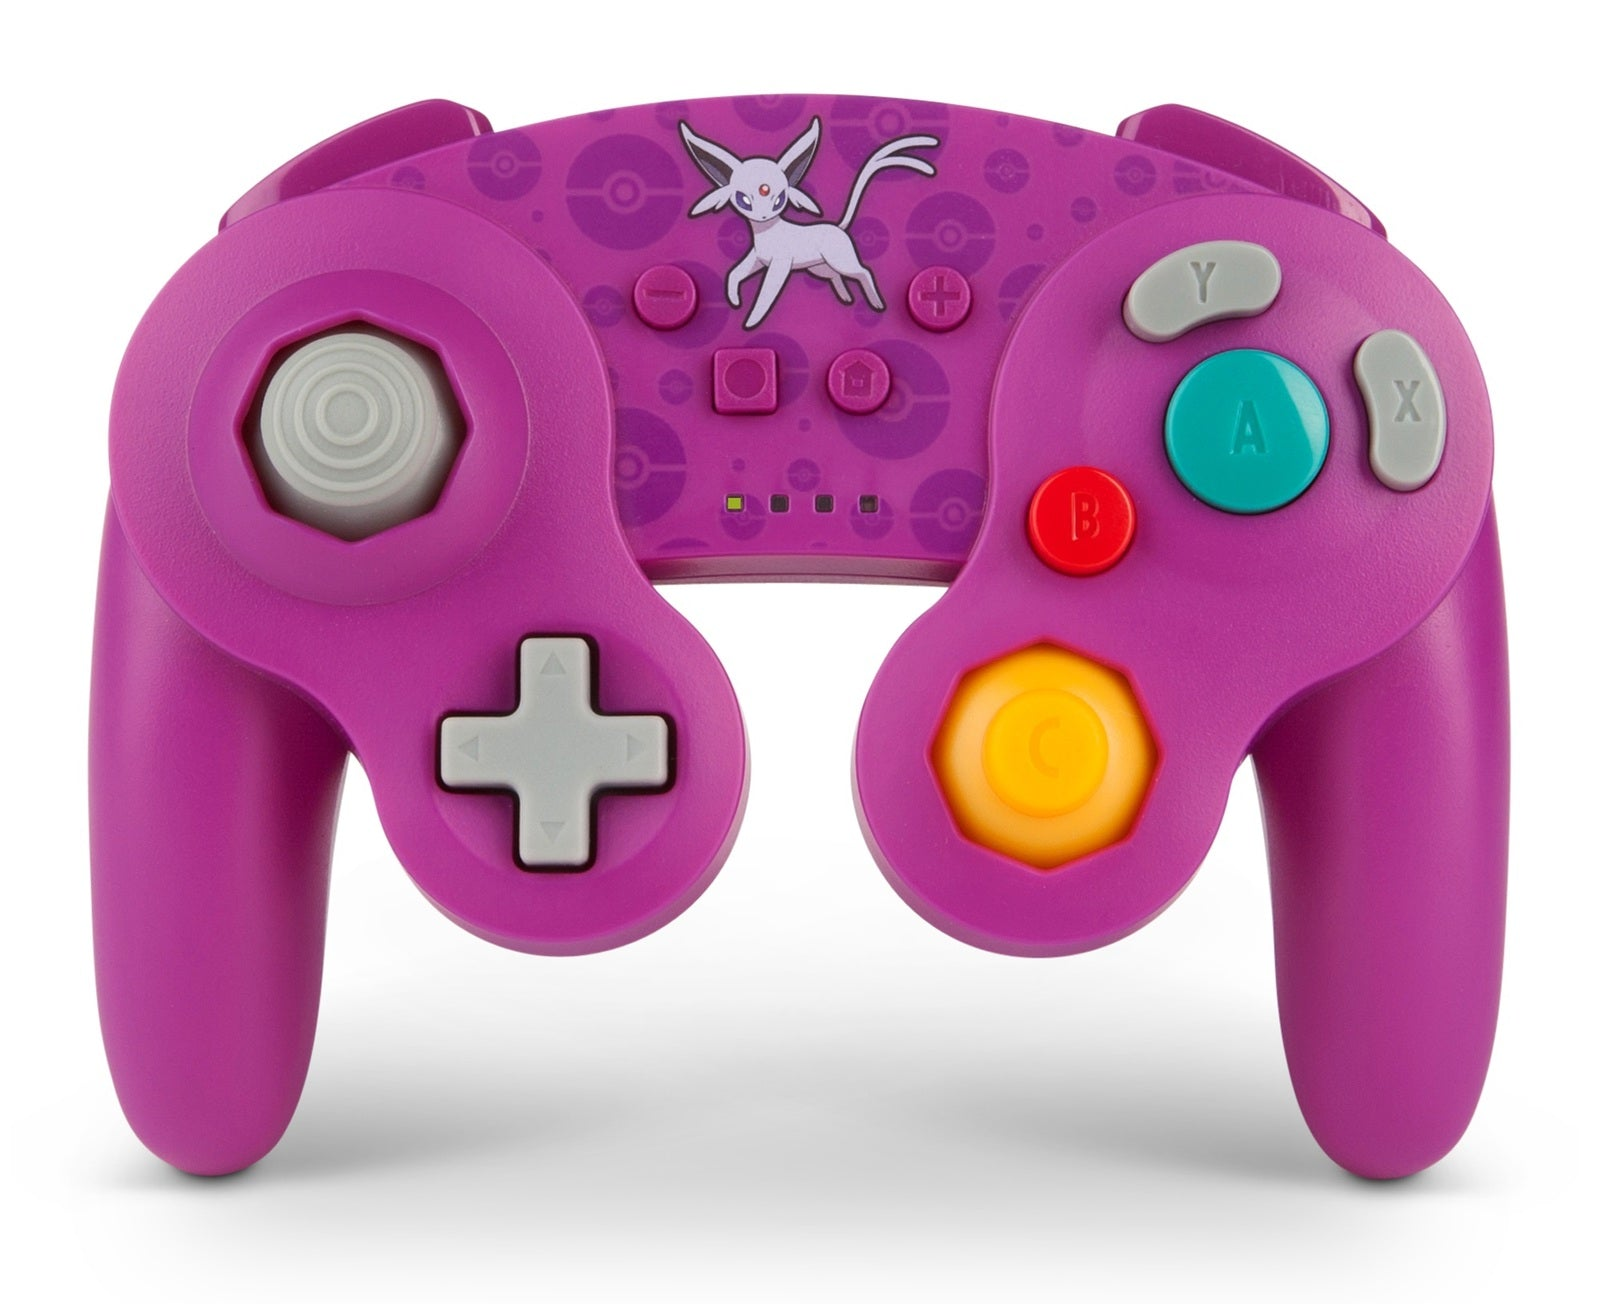 Nintendo Switch Wireless GameCube Controller - Espeon - Nintendo Switch